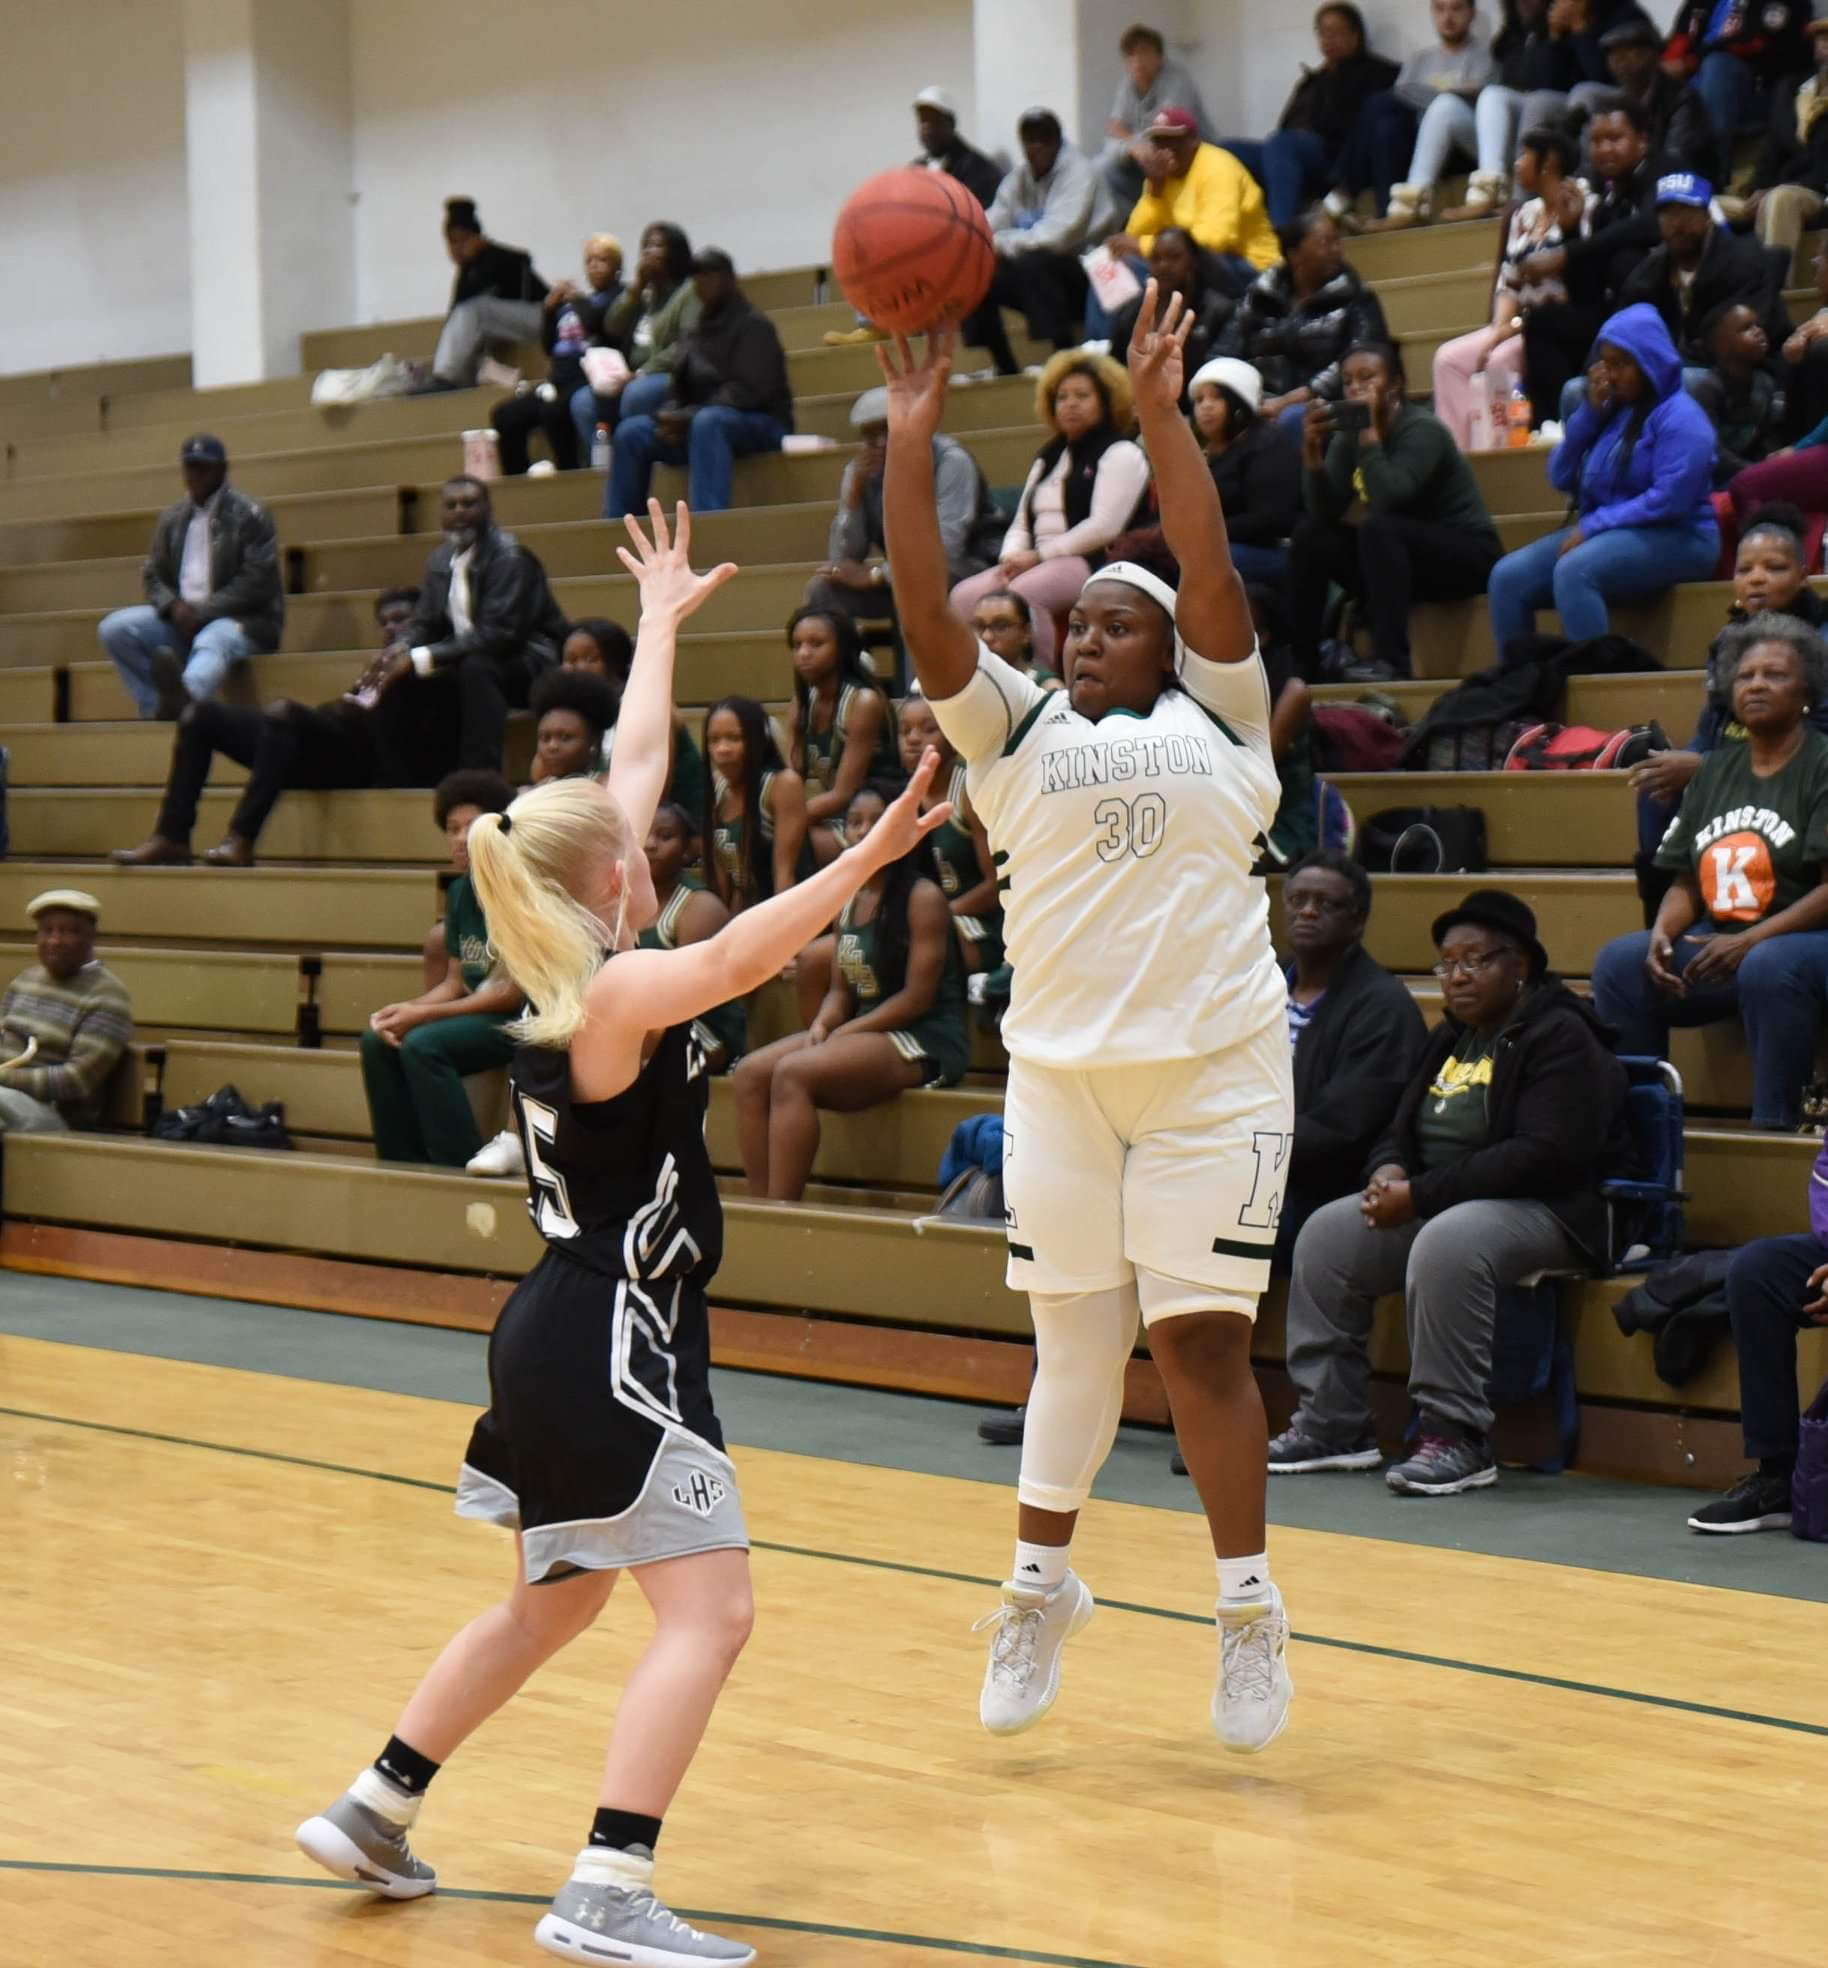 Kinston's Zykia Andrews shoots over Ledford's Allie Davis during Tuesday's fourth-round matchup. Photo by William 'Bud' Hardy / Neuse News